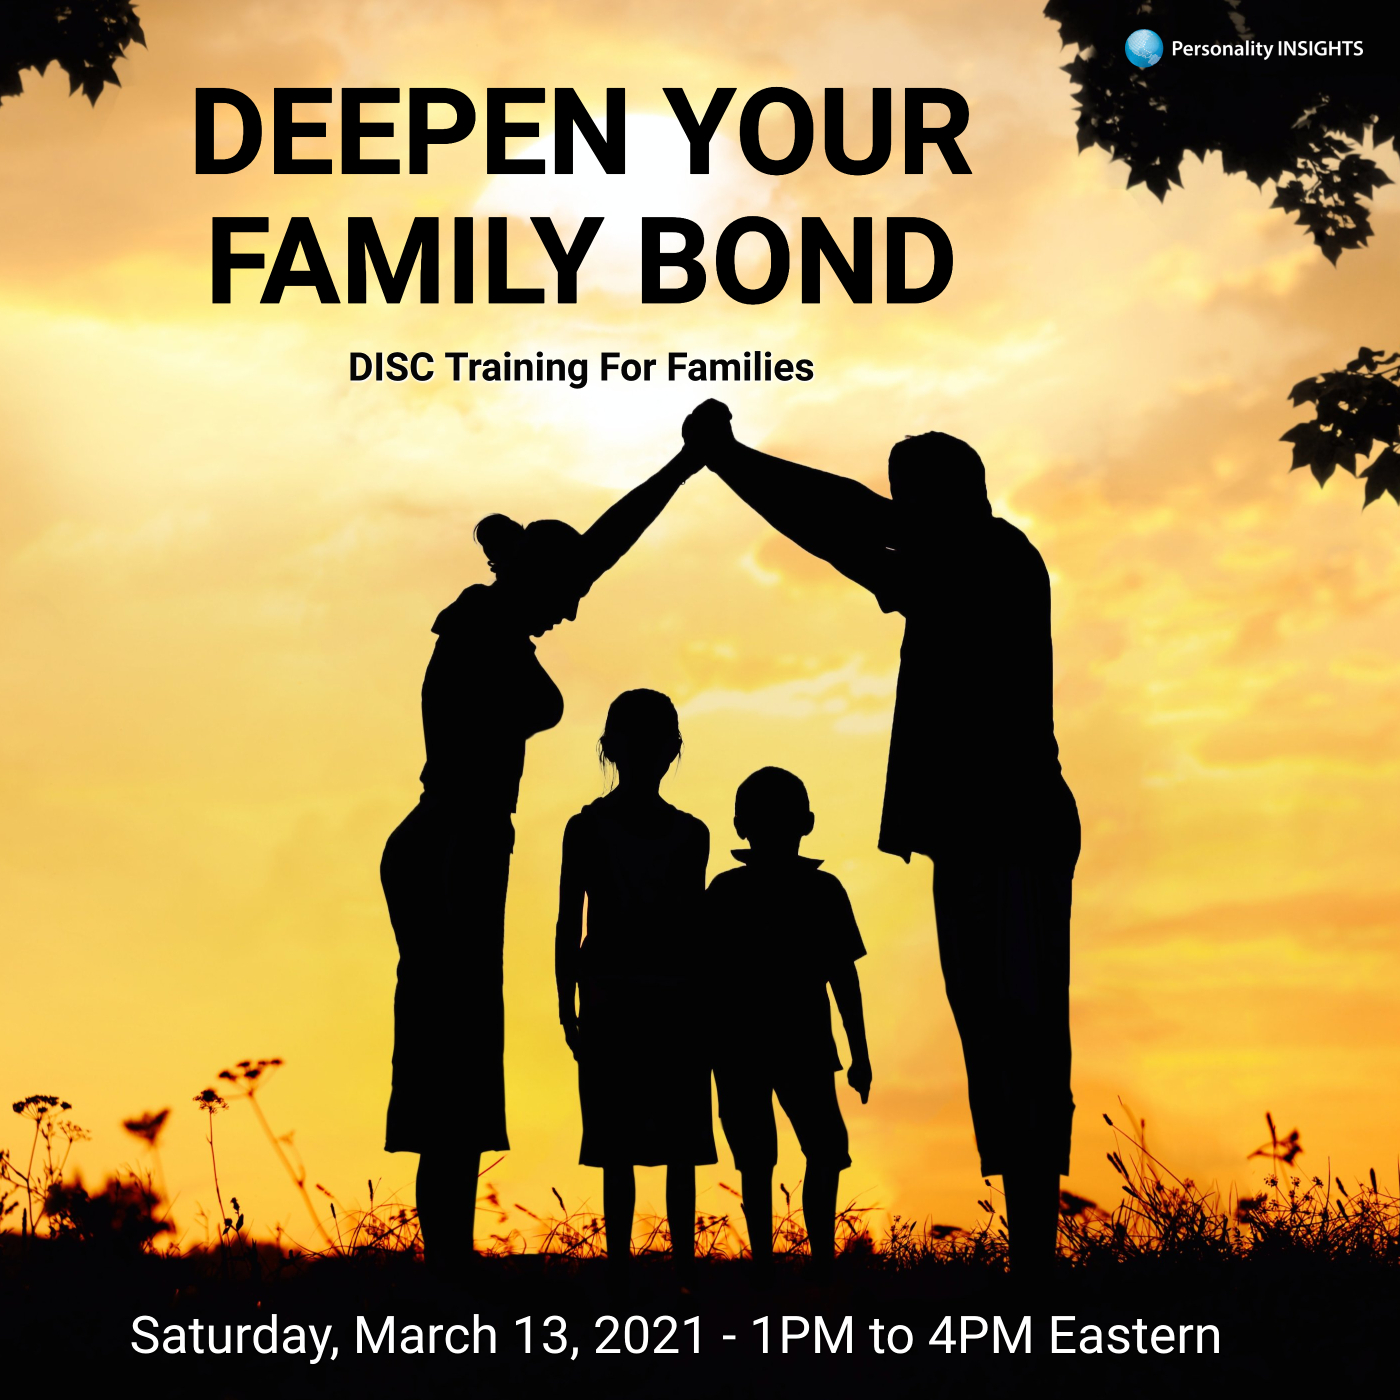 Family DISC Training (Live Virtual Class) – March 13, 2021